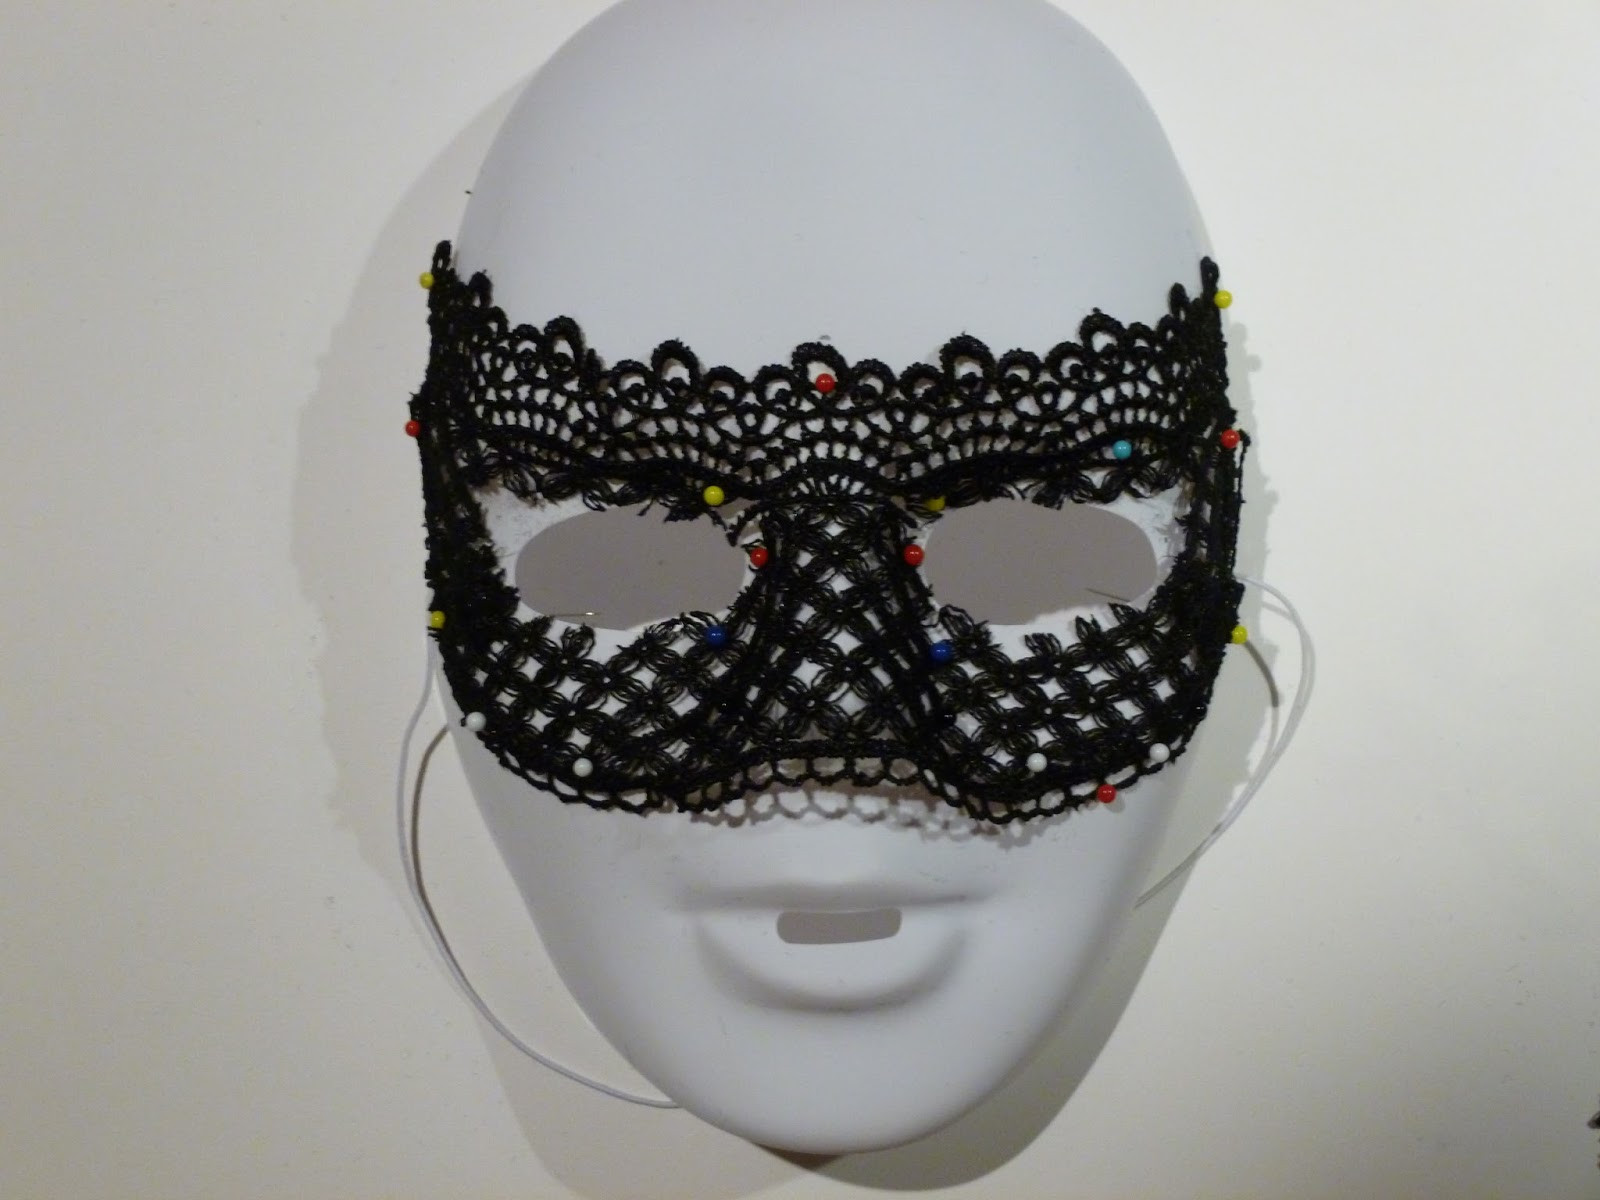 Best ideas about DIY Masquerade Masks . Save or Pin SickChick DIY Lace Masquerade Mask Now.